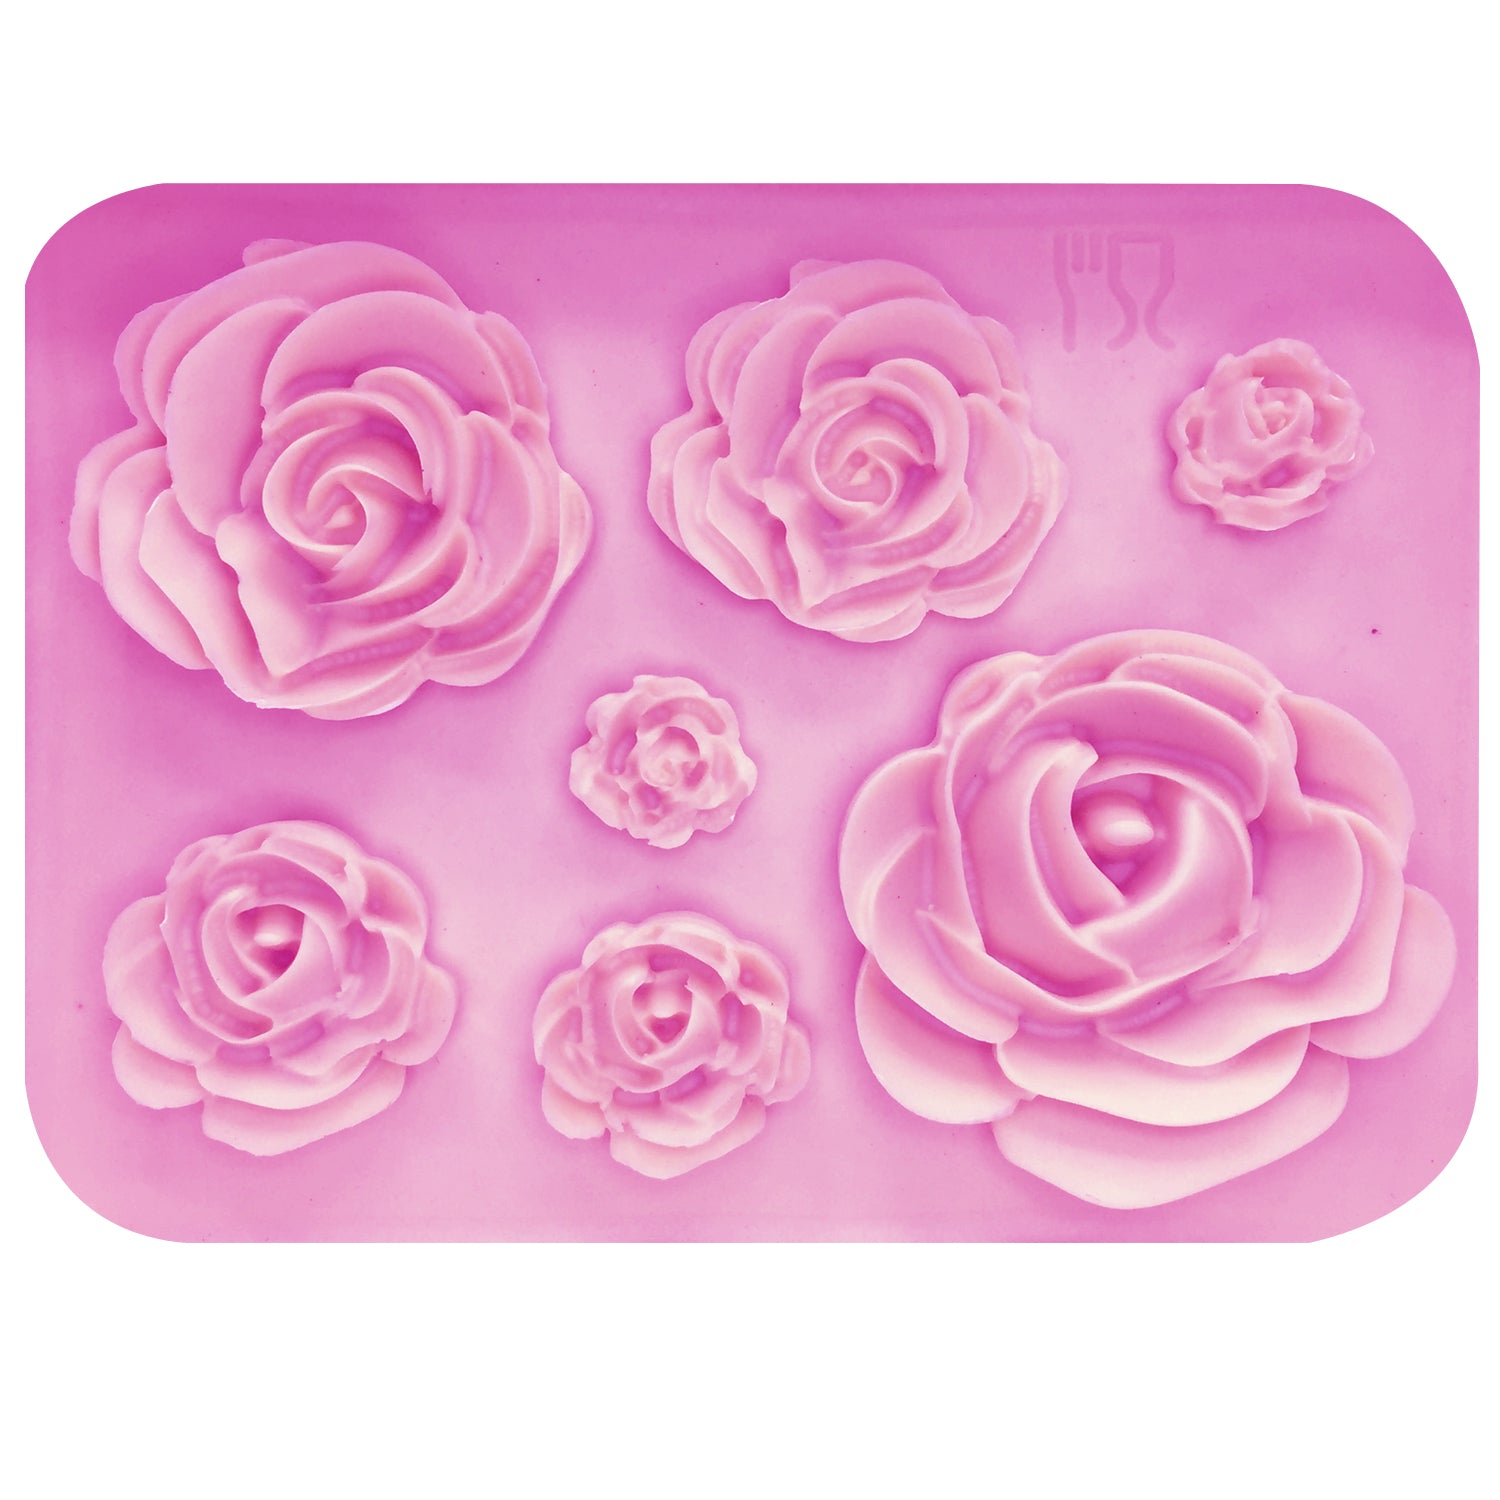 Rose Silicone Fondant Cake/Chocolate Mold